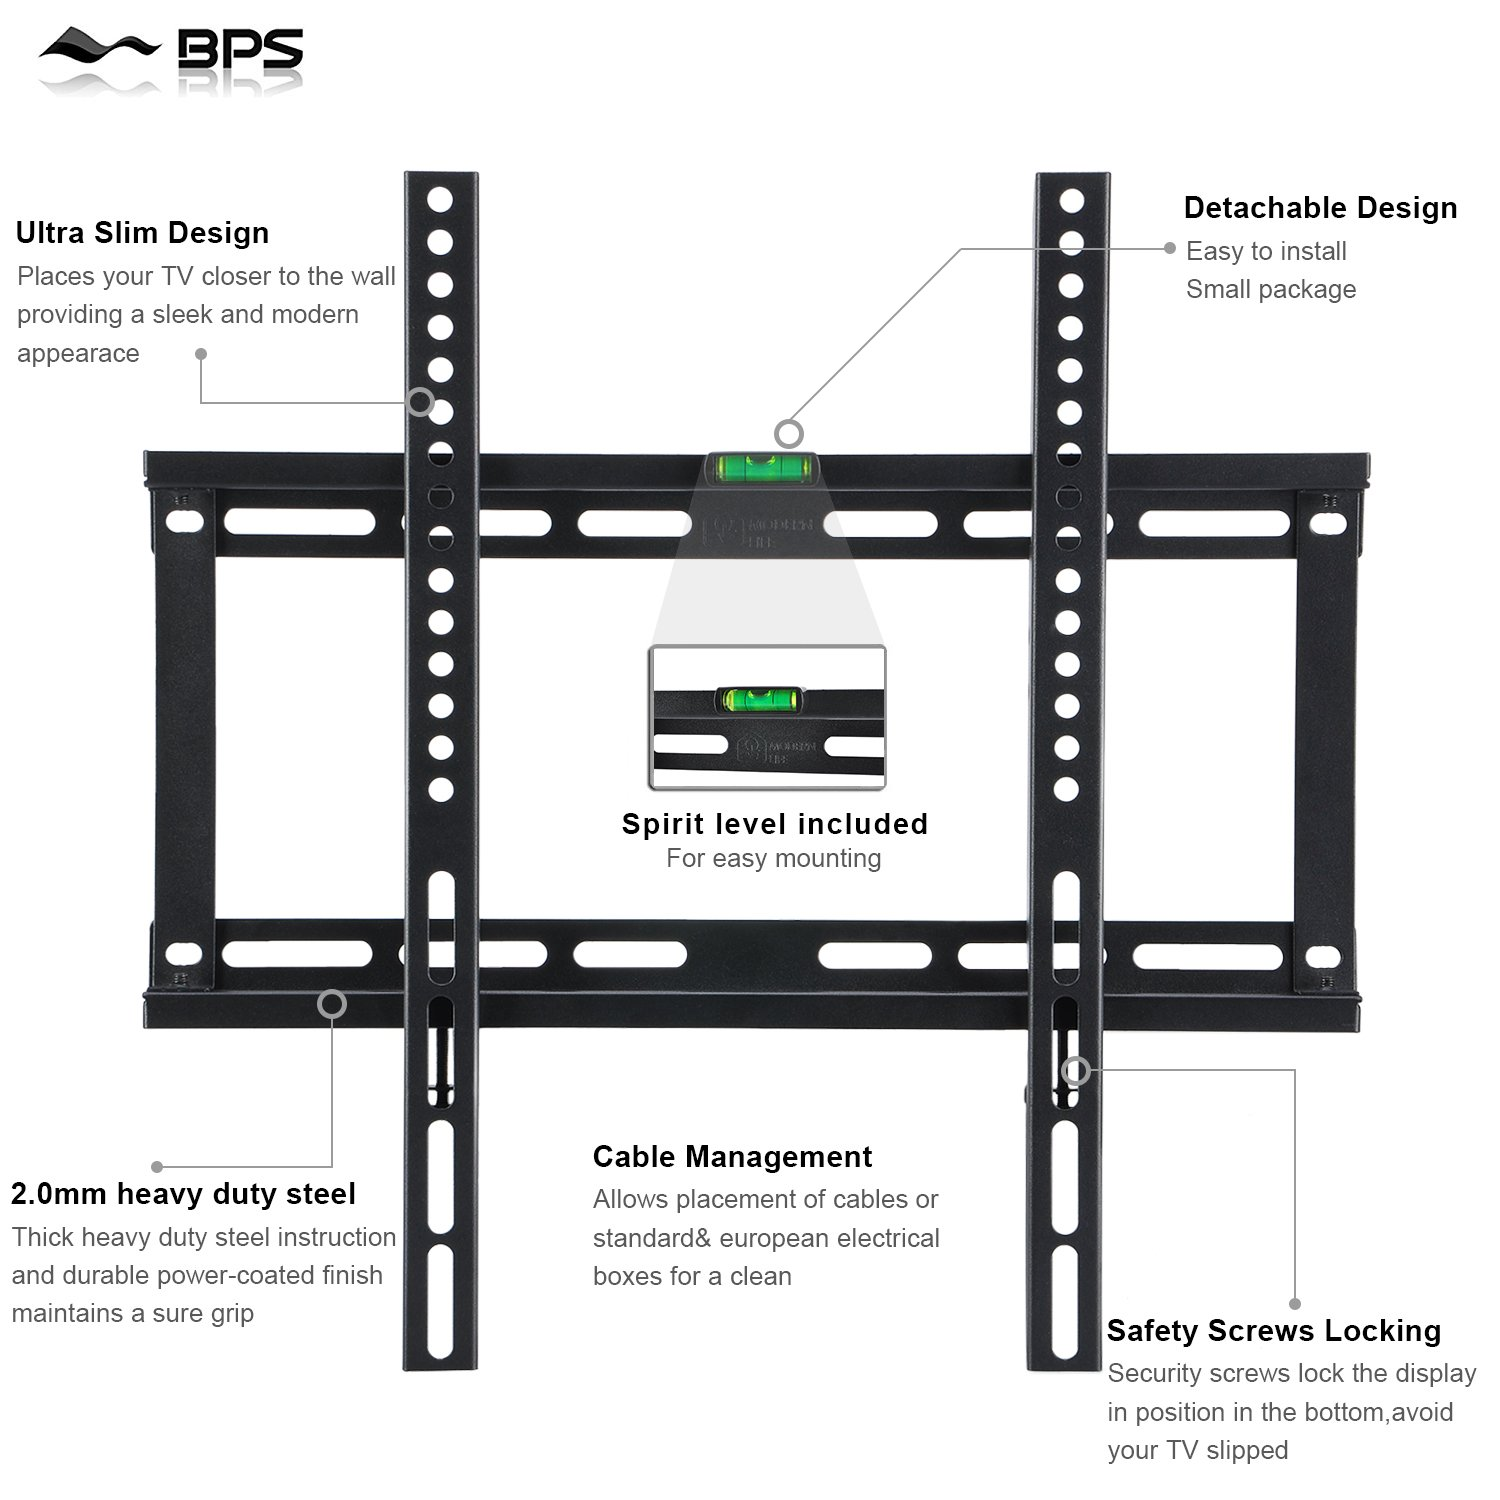 Bps Ultra Slim Tv Wall Bracket Mount For 23 55 Multi Room Distribution System On Wiring Diagram Electronics